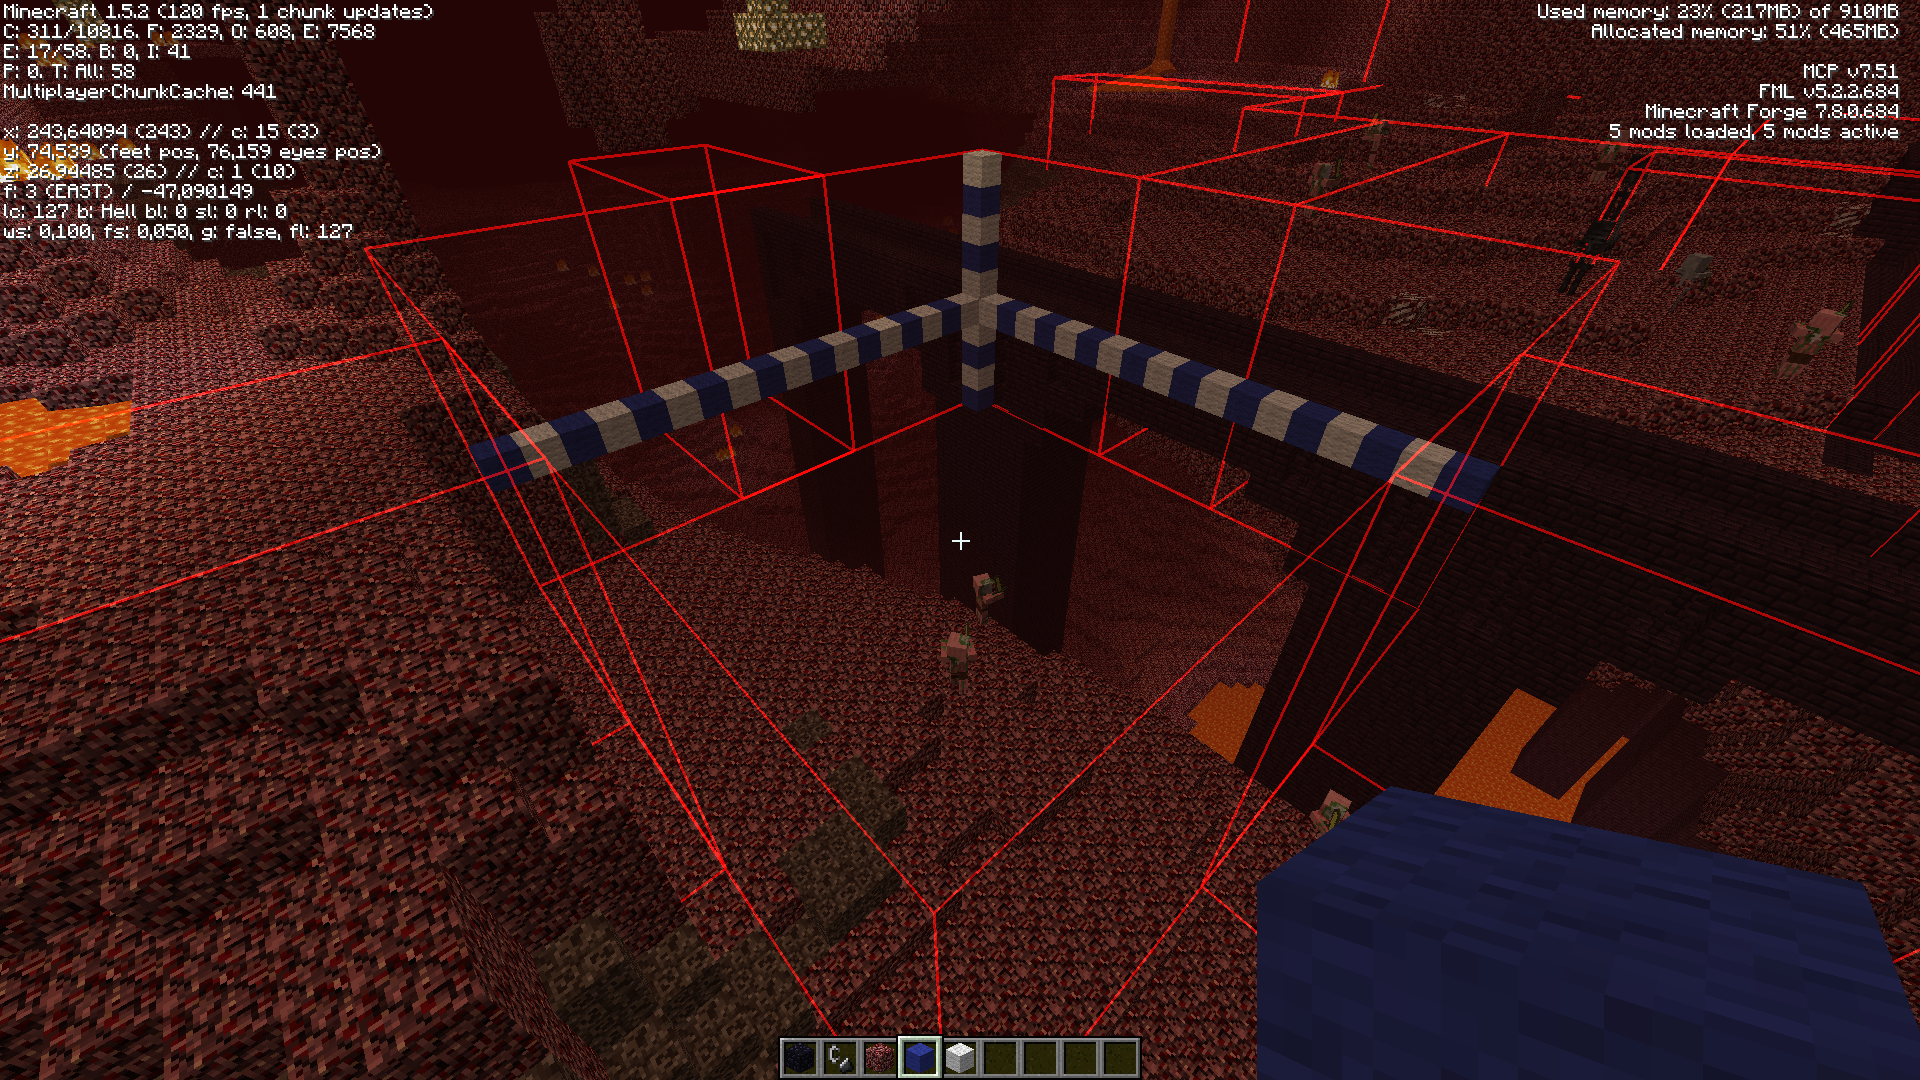 MC-15547] Structures (witch huts, nether fortresses etc